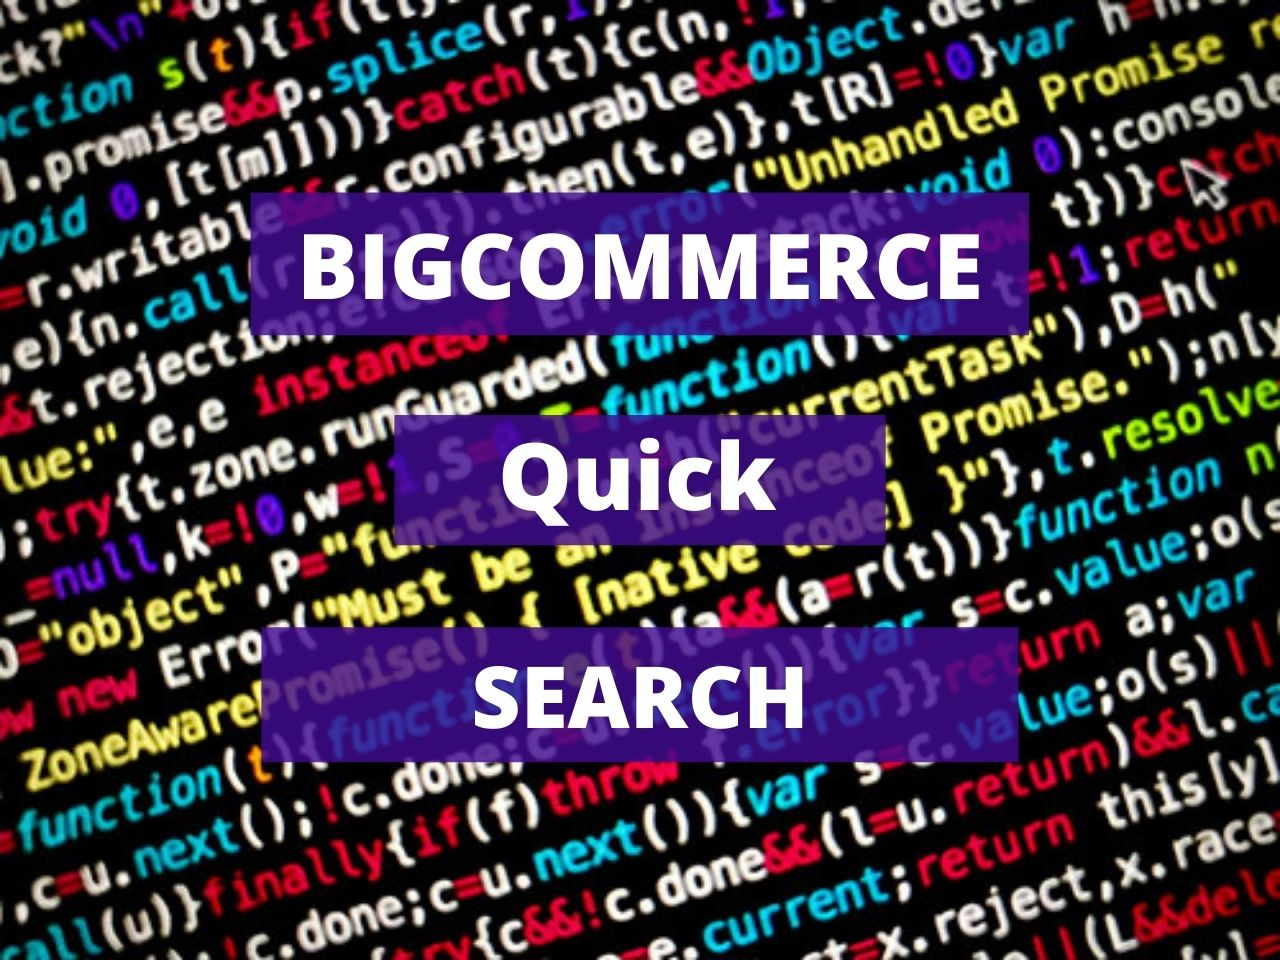 Bigcommerce Quick Search